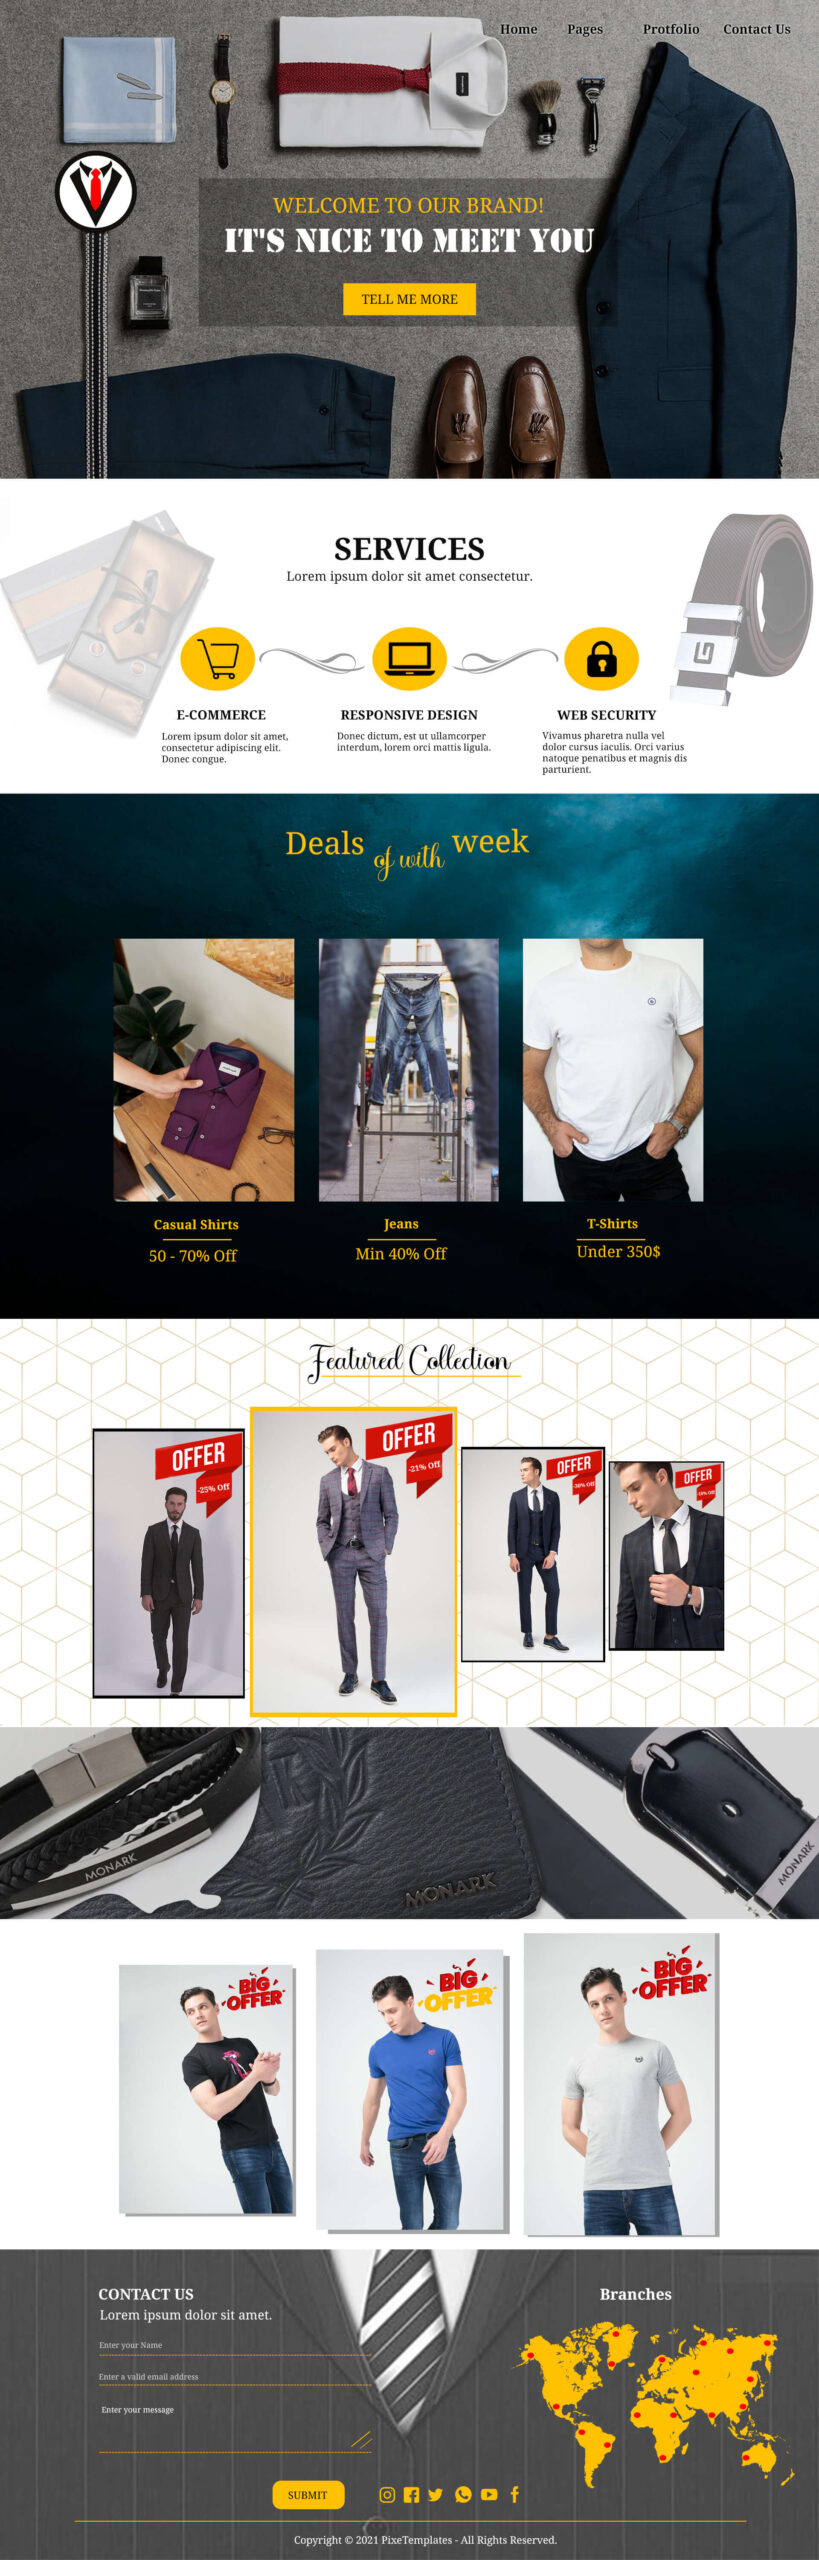 Simple but Attractive Website Template for Fashion & Beauty